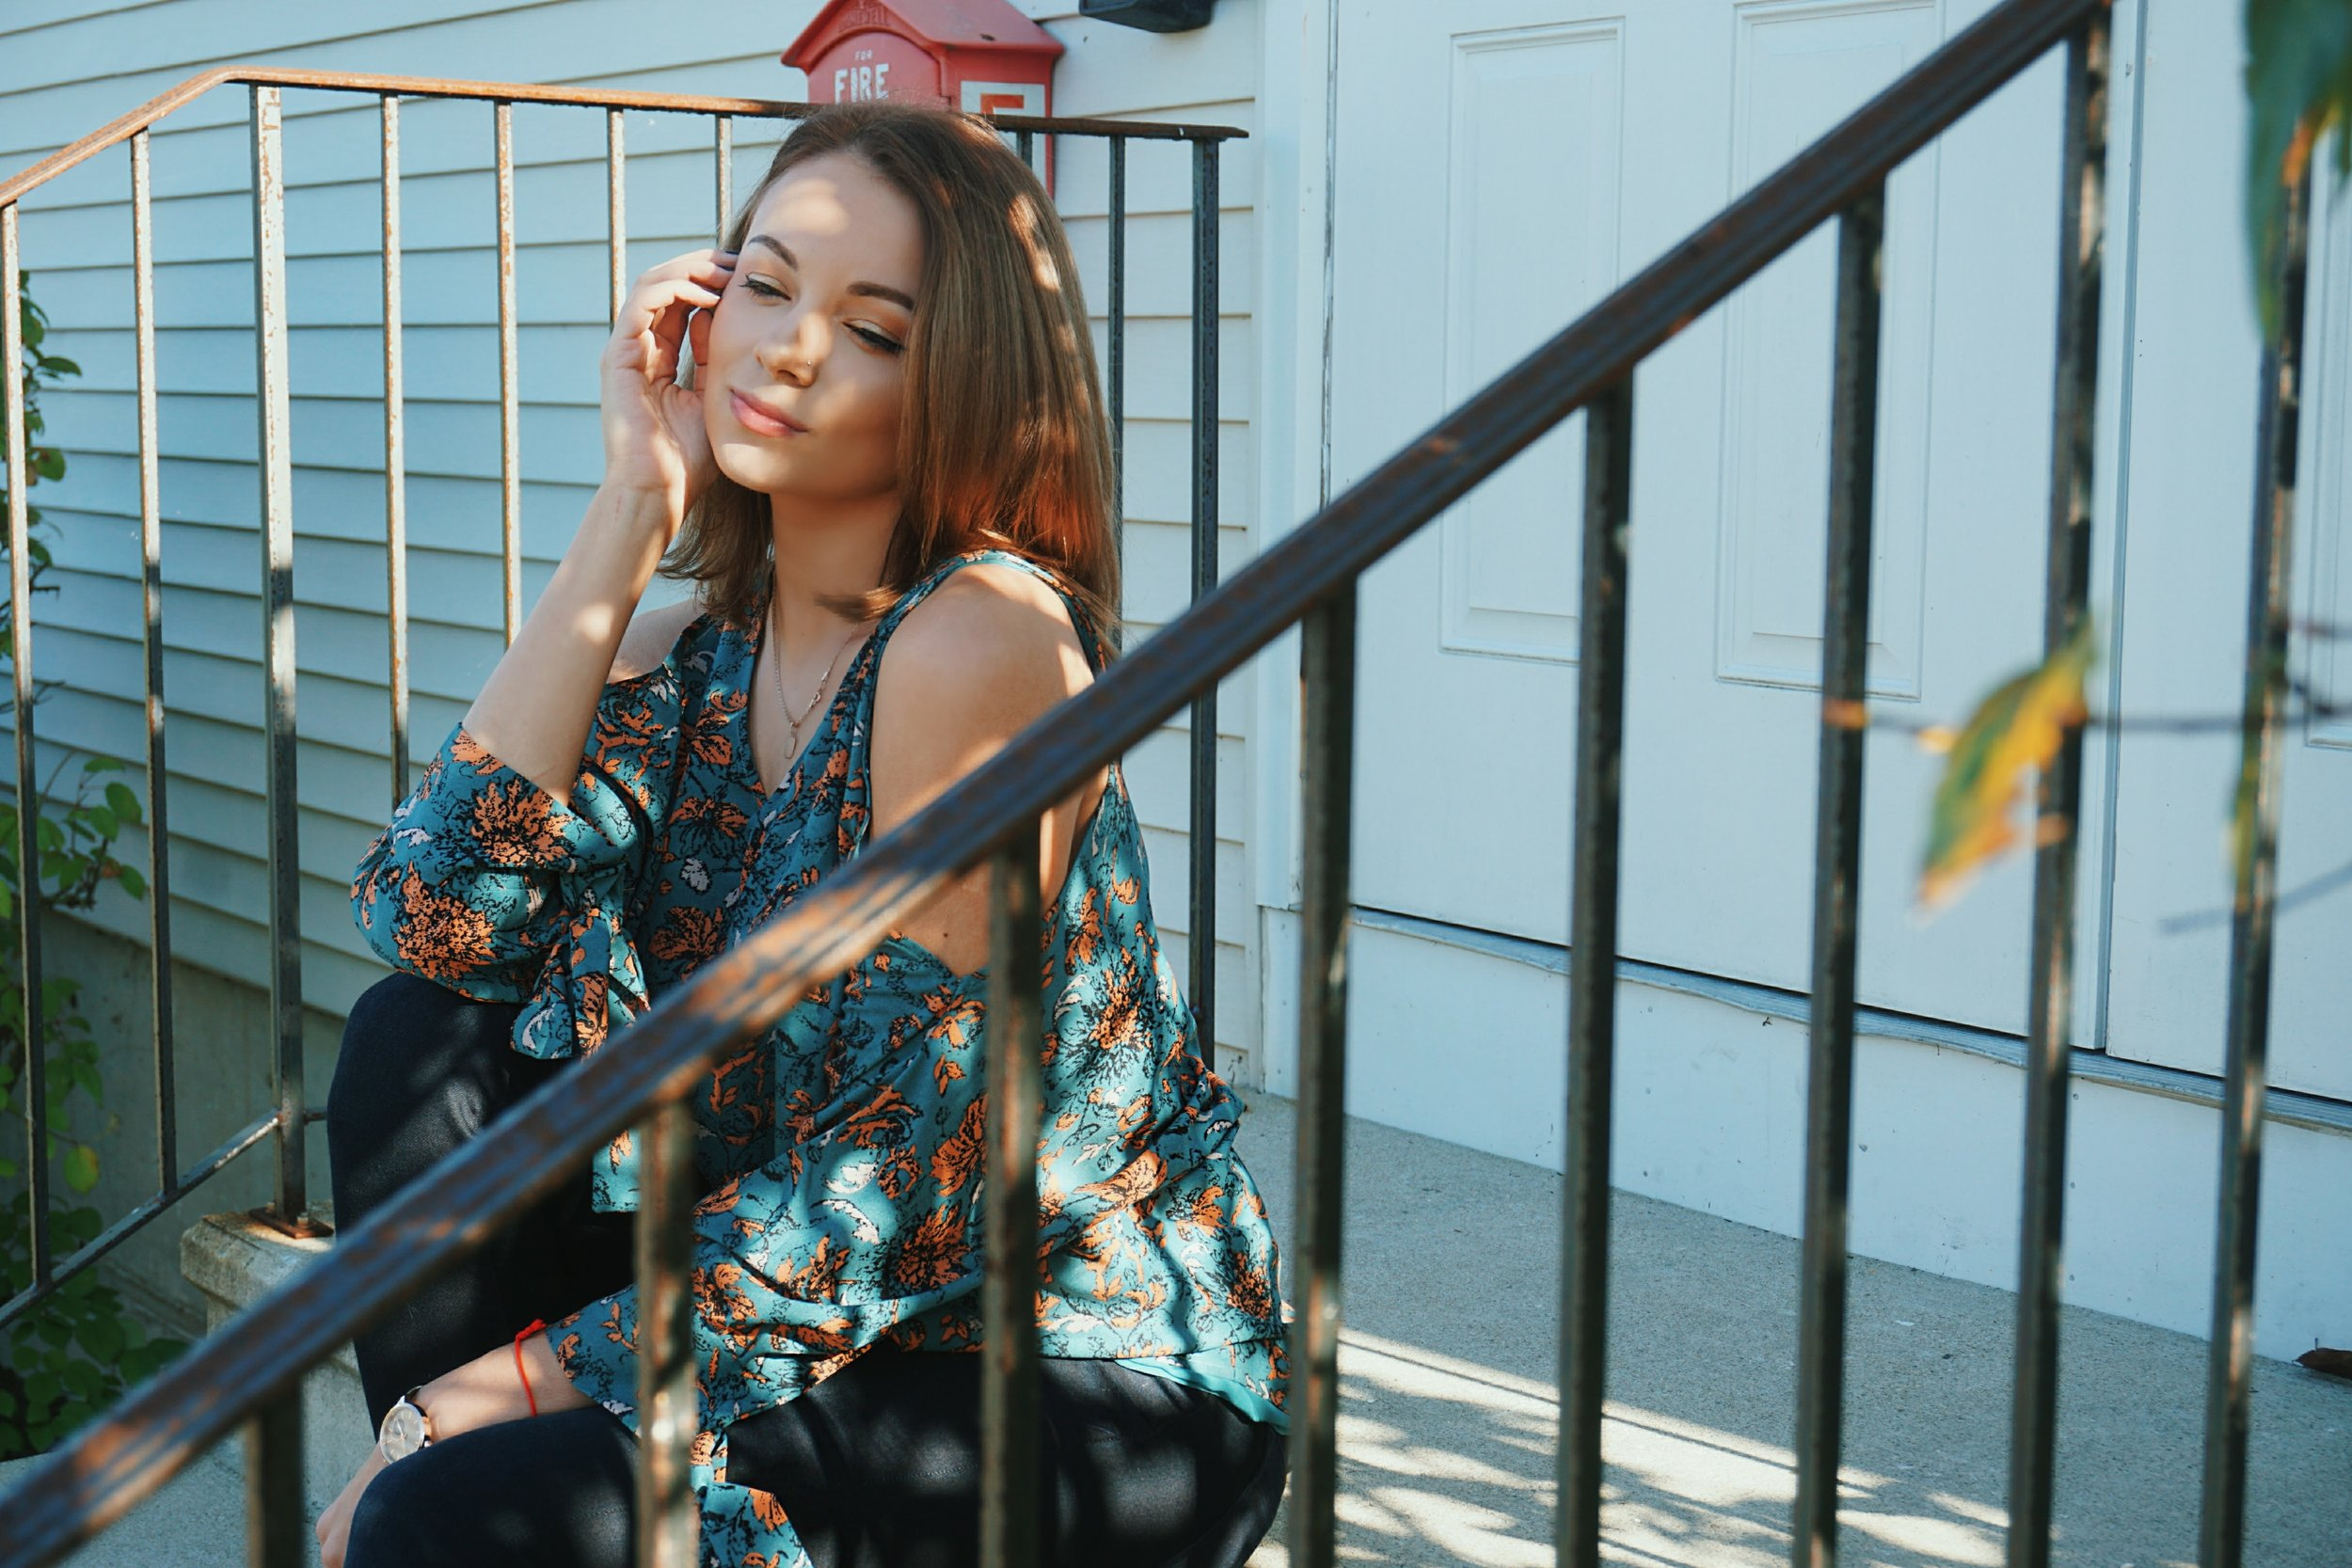 Lifestyle blogger wearing a blue floral open-shoulder top.